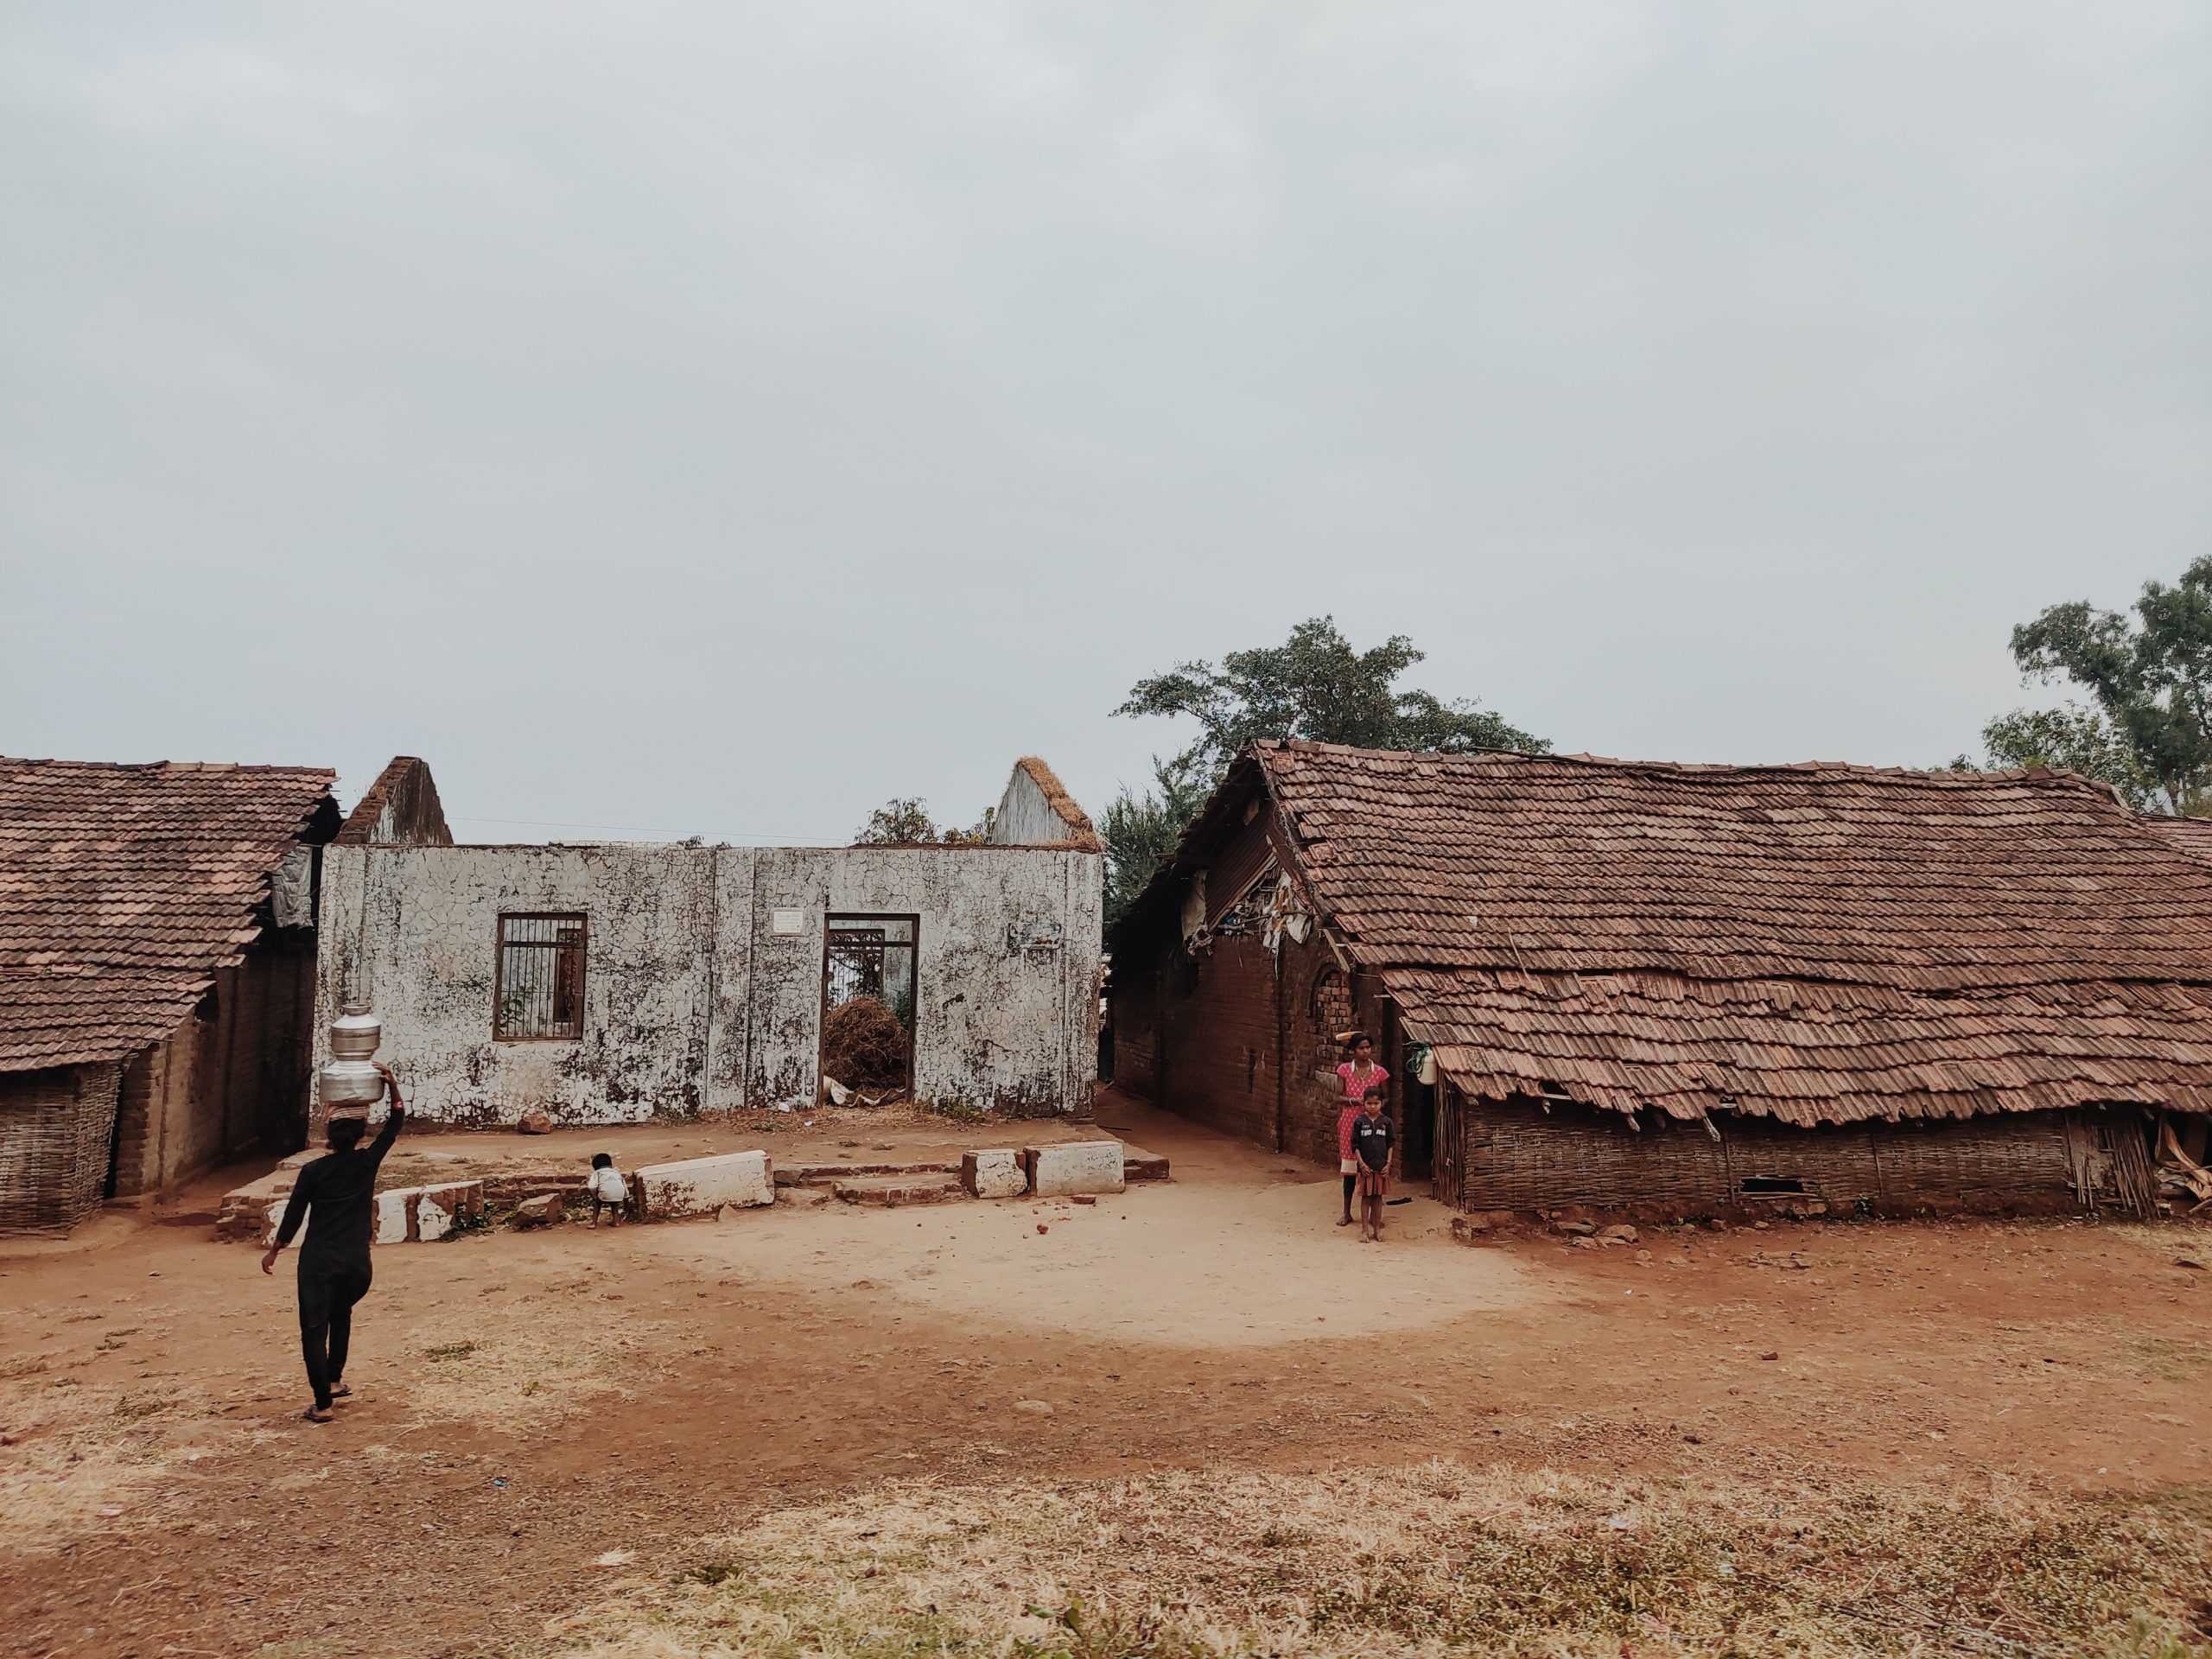 Kids and houses of a village